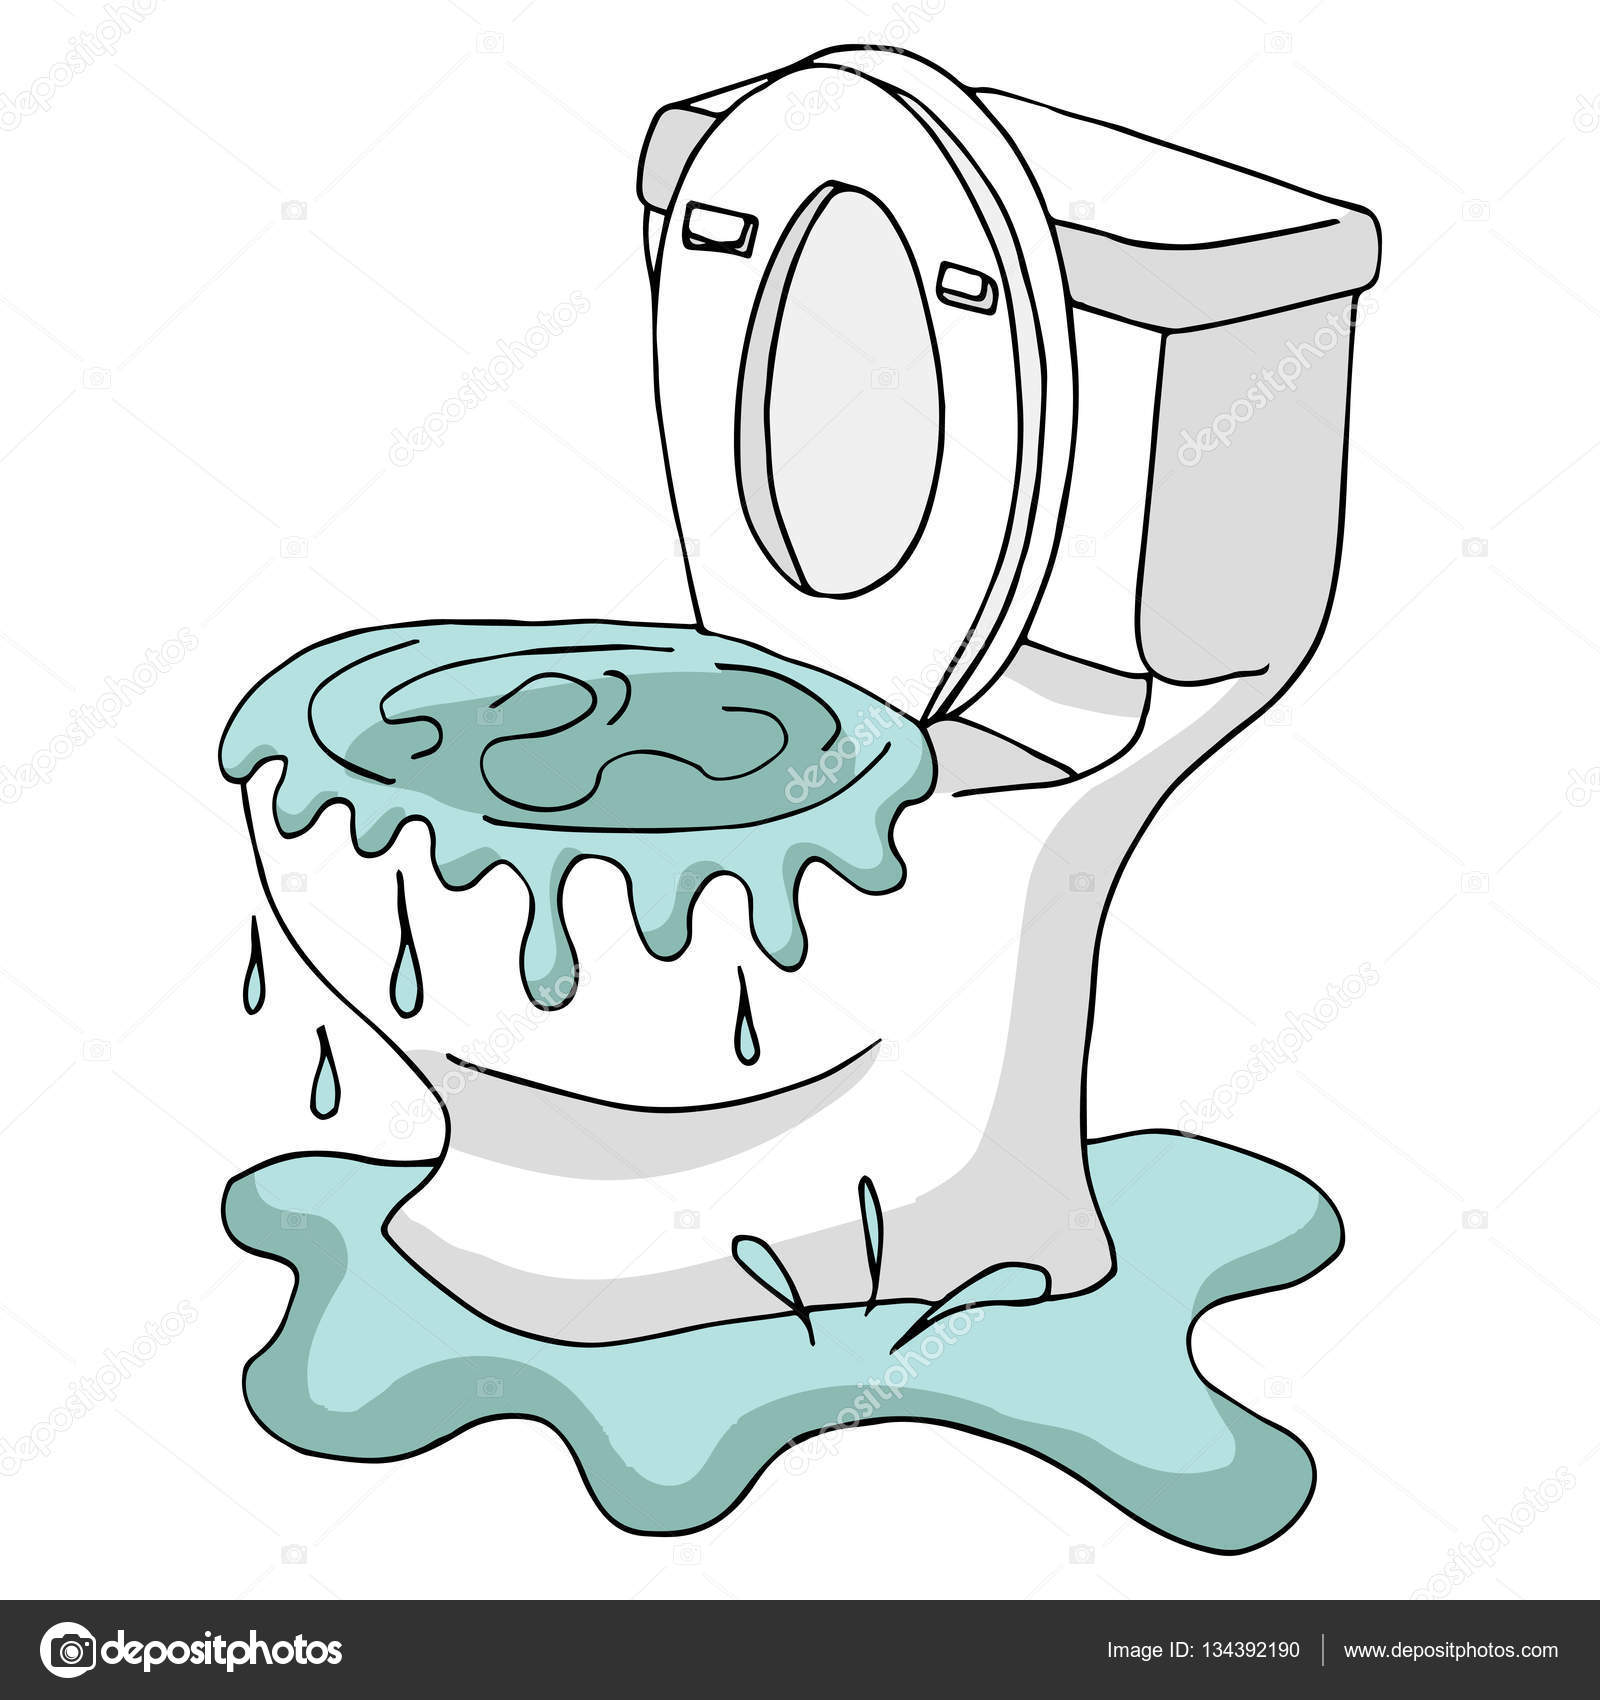 Clogged Overflowing Toilet — Stock Vector © cteconsulting #134392190